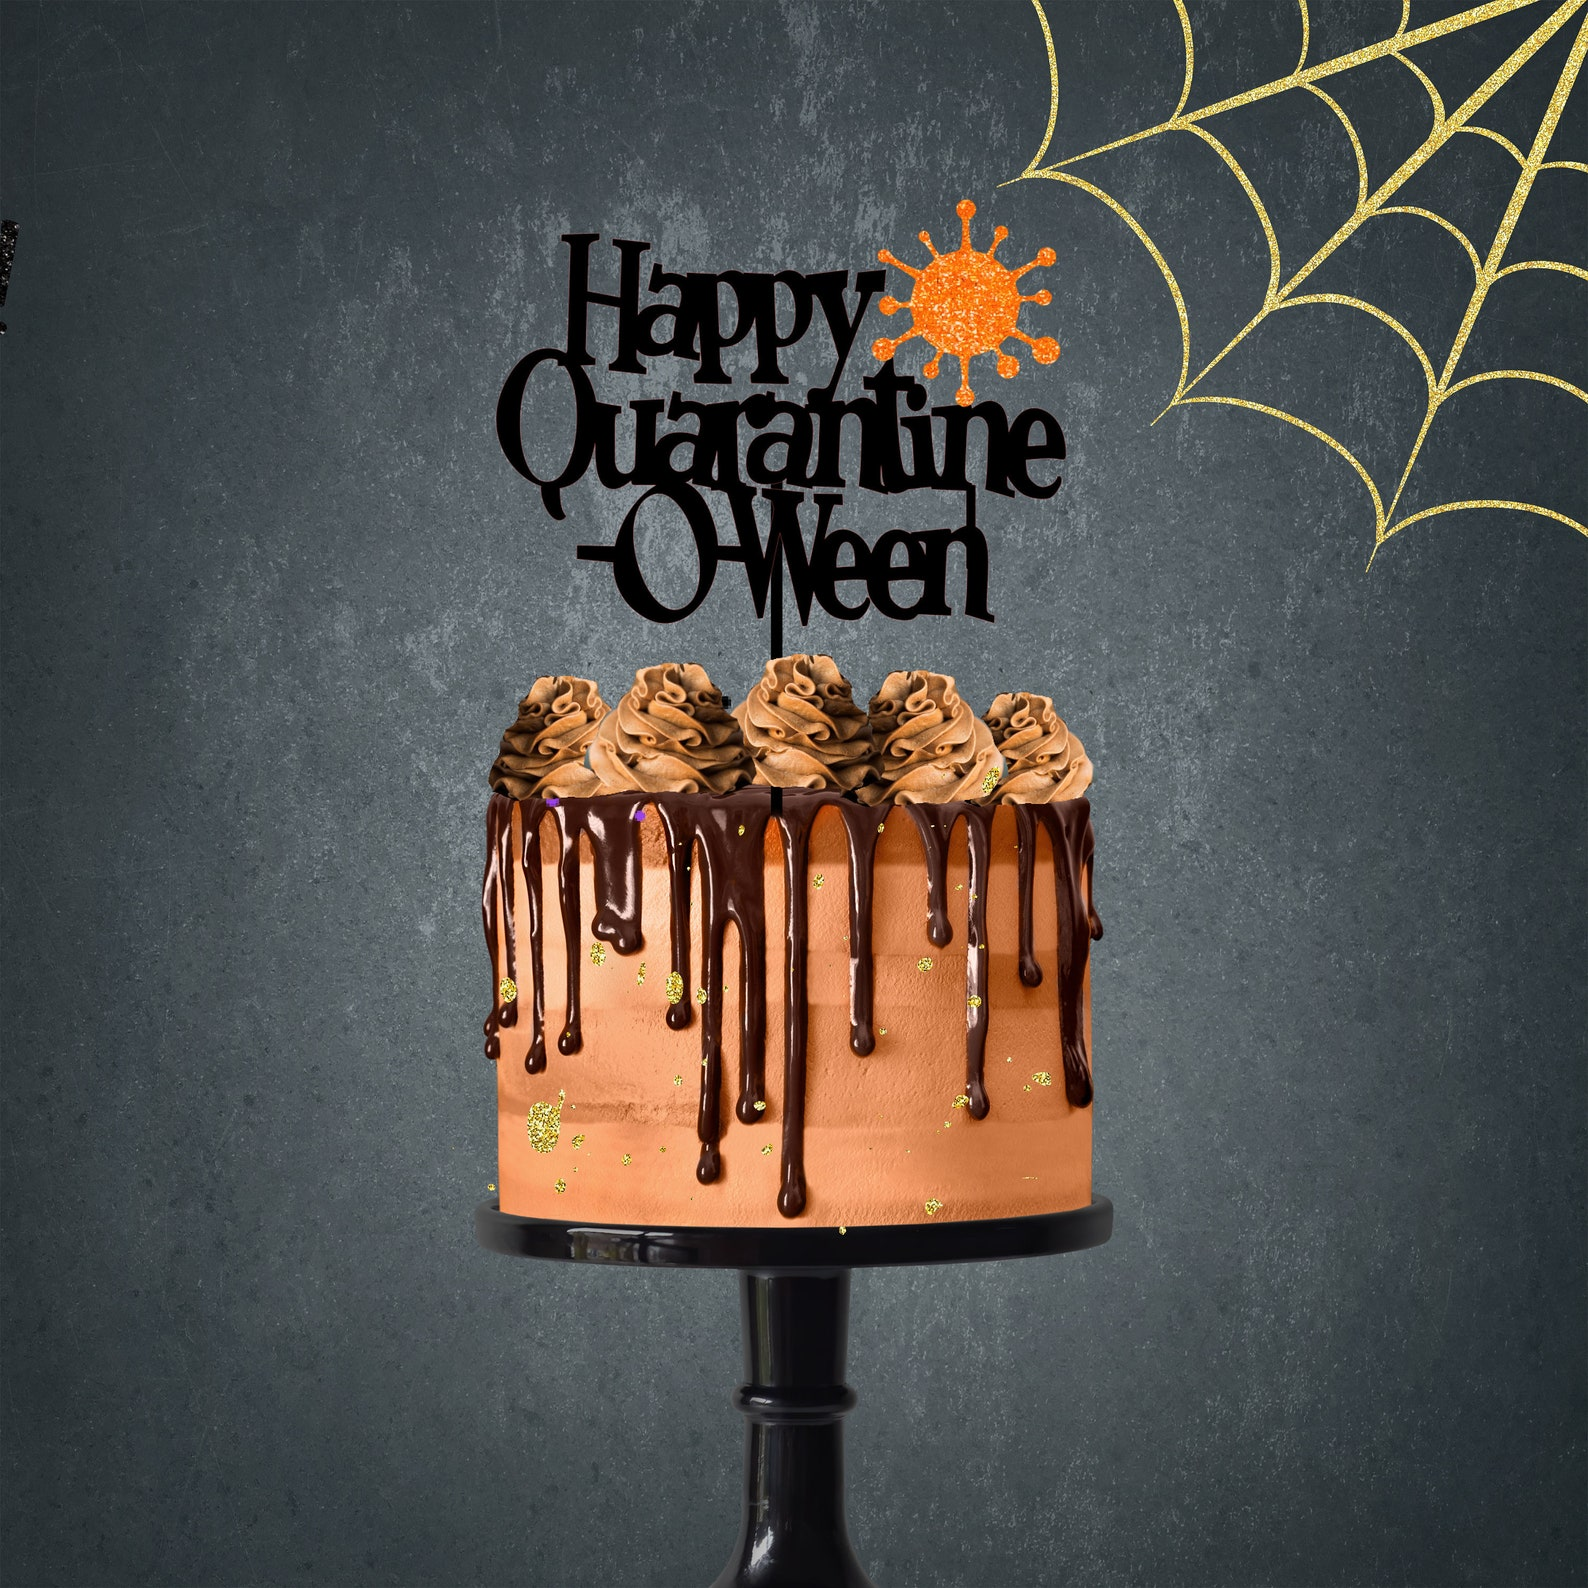 Quarantine-O-Ween Cake Toppers